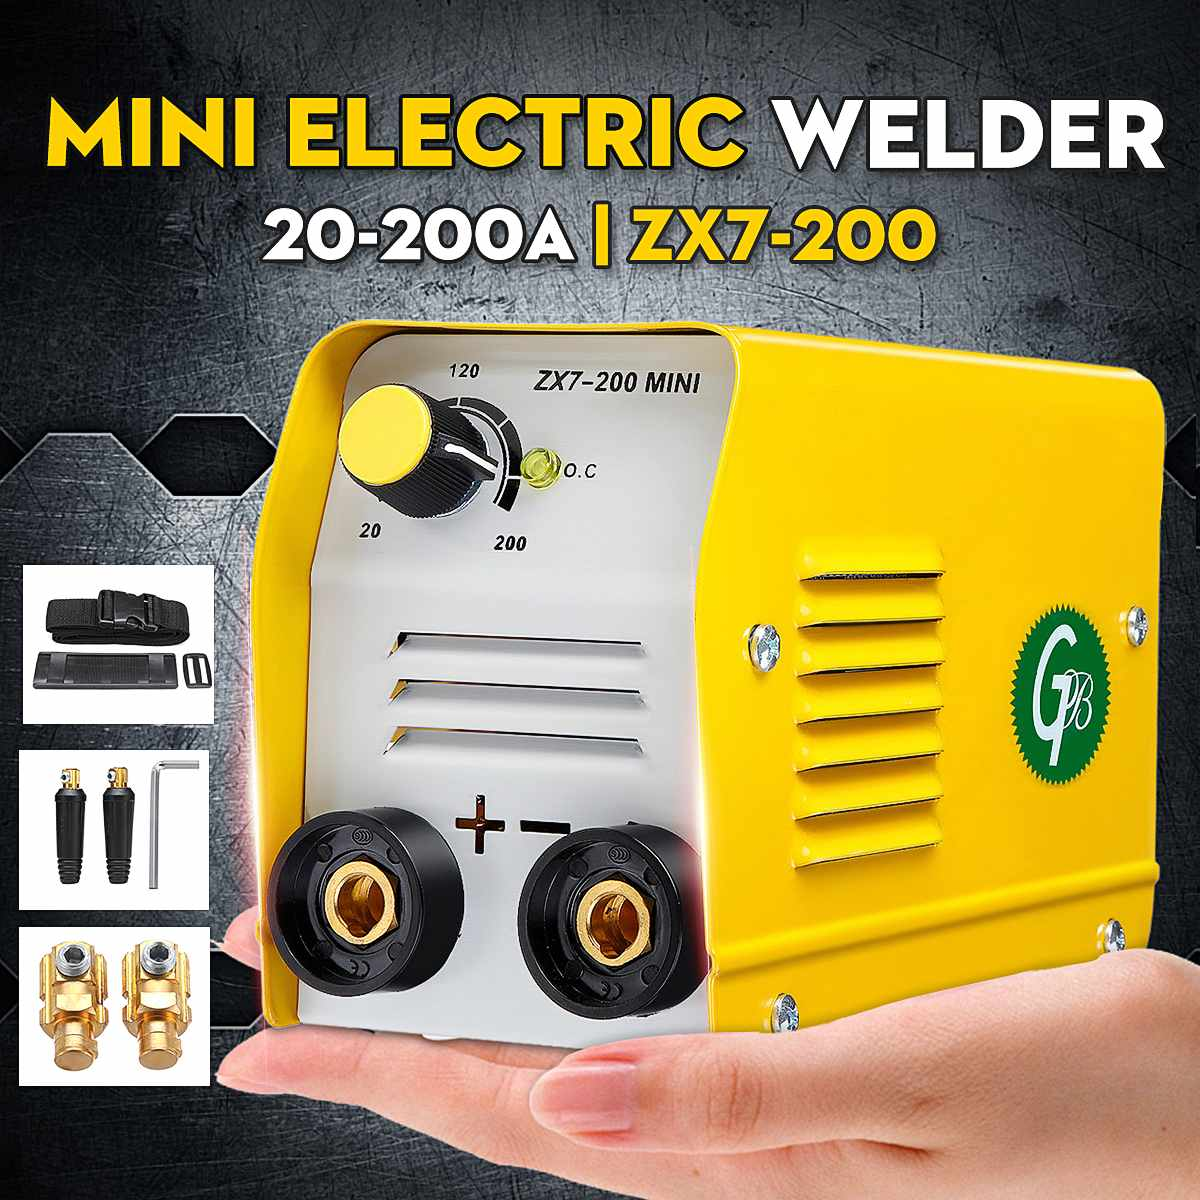 220V Handheld Mini MMA Electric Stick Welder ZX7 200 Insulated Electrode Inverter Arc Force Metal Welding Machine Portable Tool|Arc Welders| - AliExpress